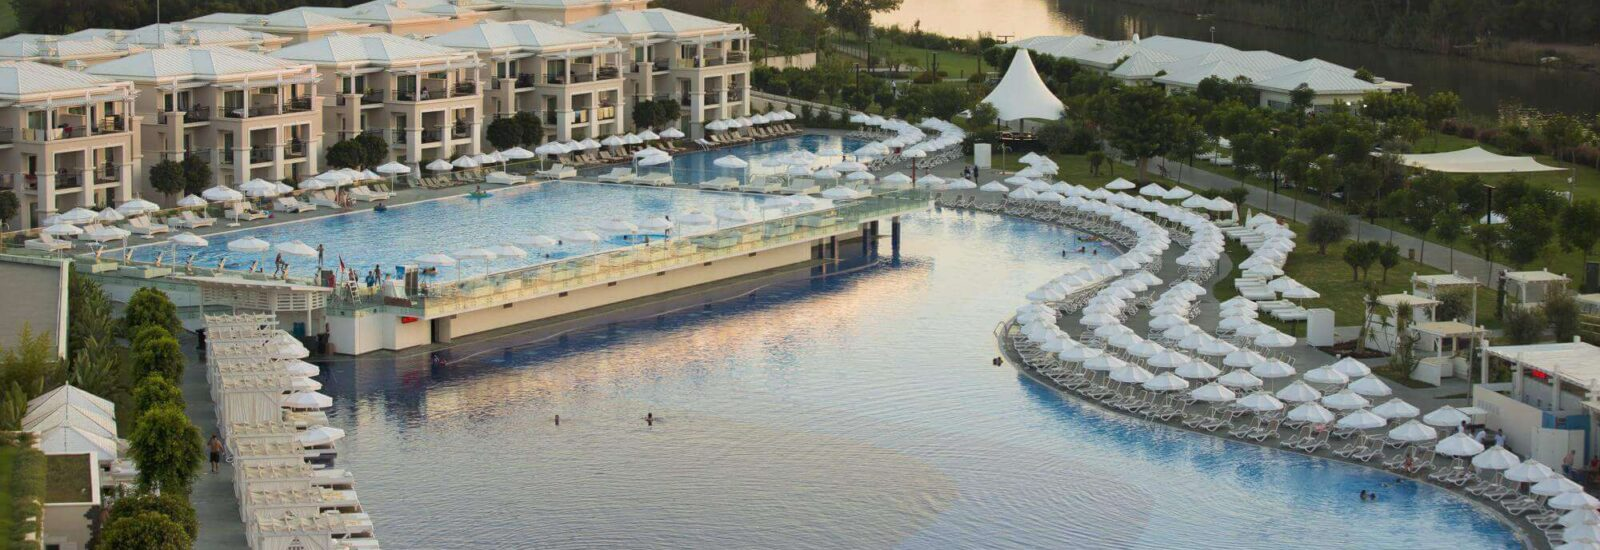 Titanic Deluxe Golf Belek Pool And River